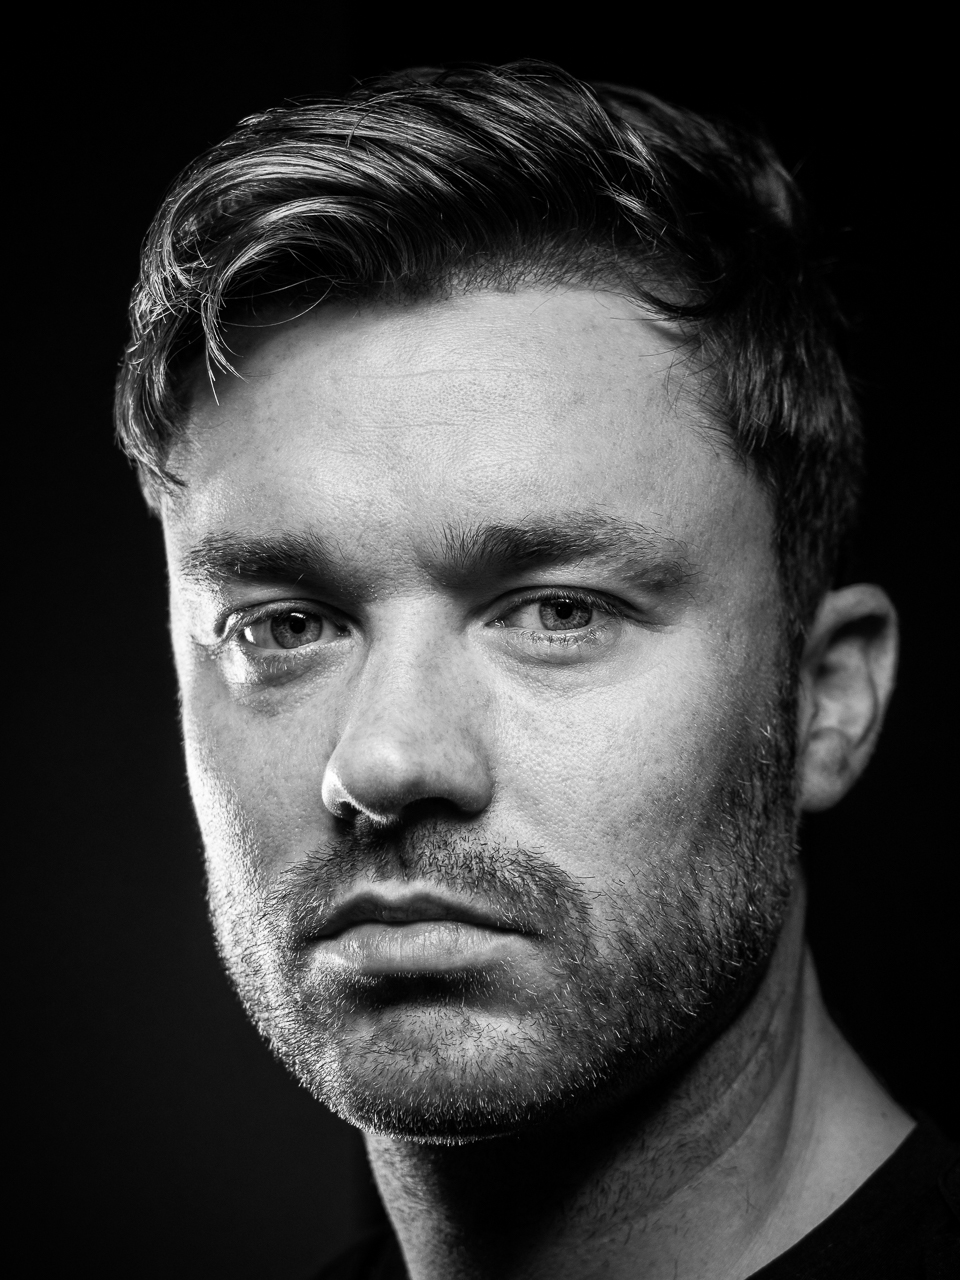 Ross Goold head shot by Andy Wasley: https://andywasley.com